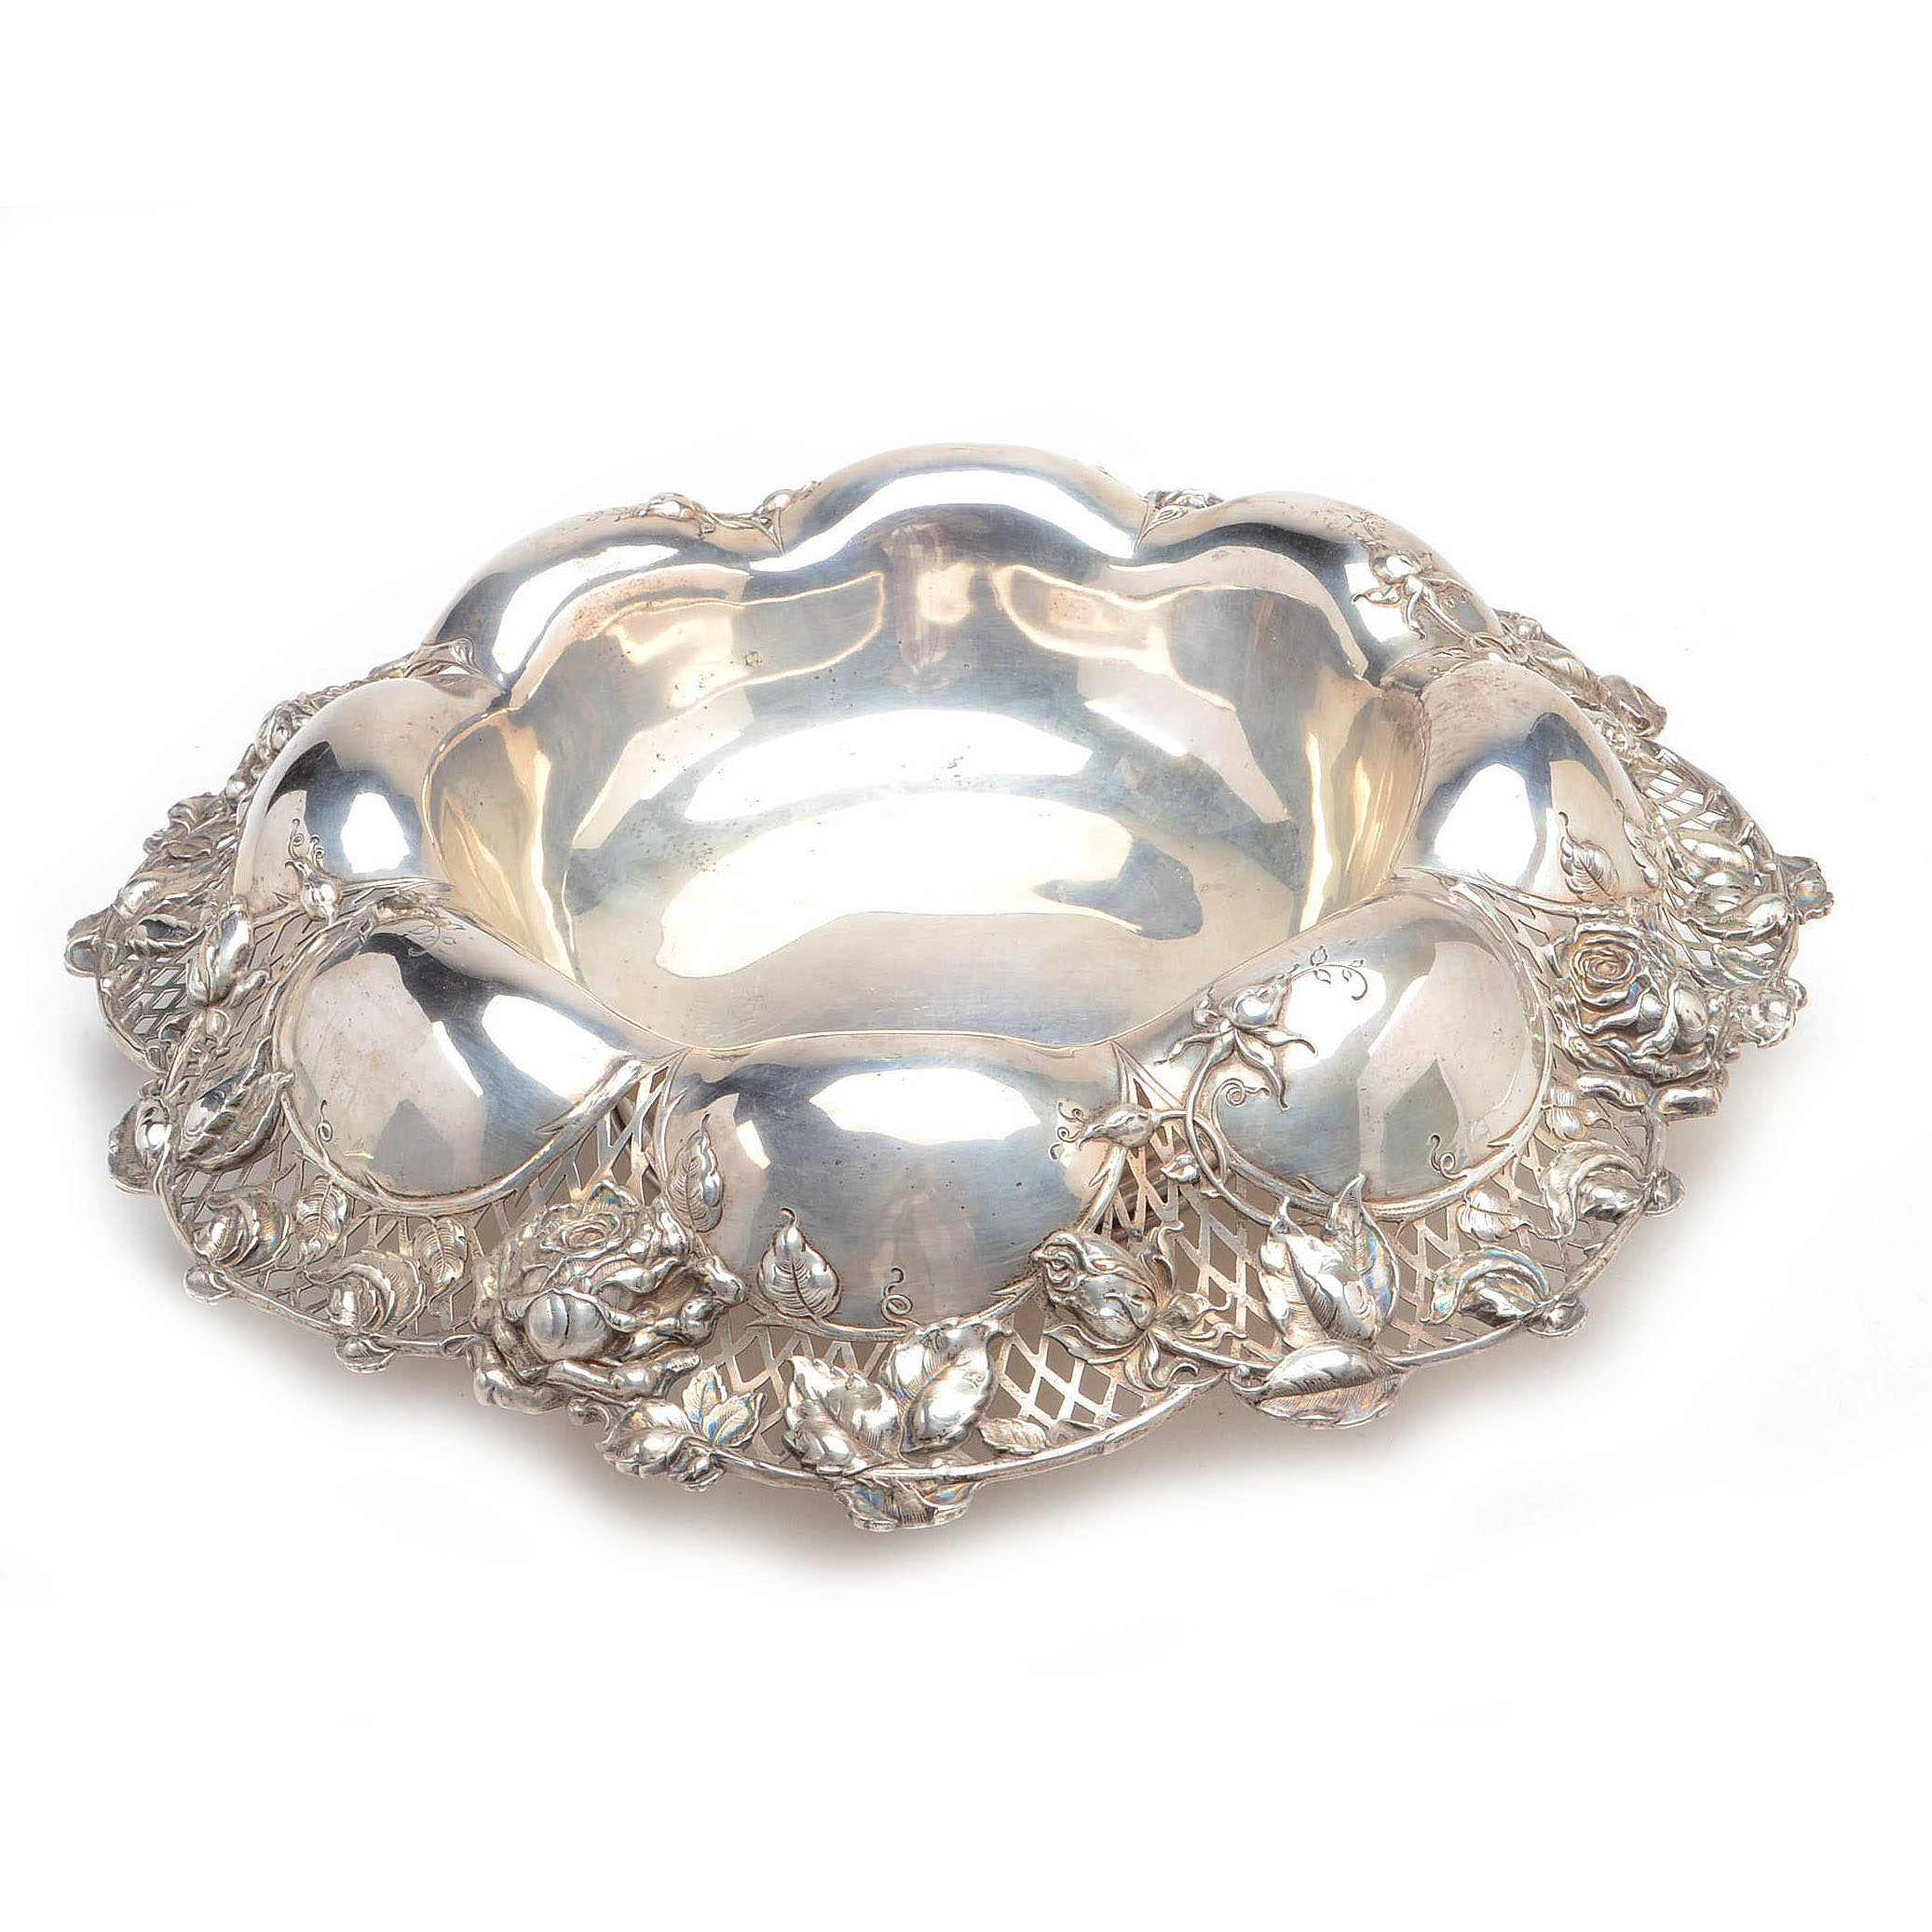 Sterling Silver Centerpiece Bowl With Rose Motif